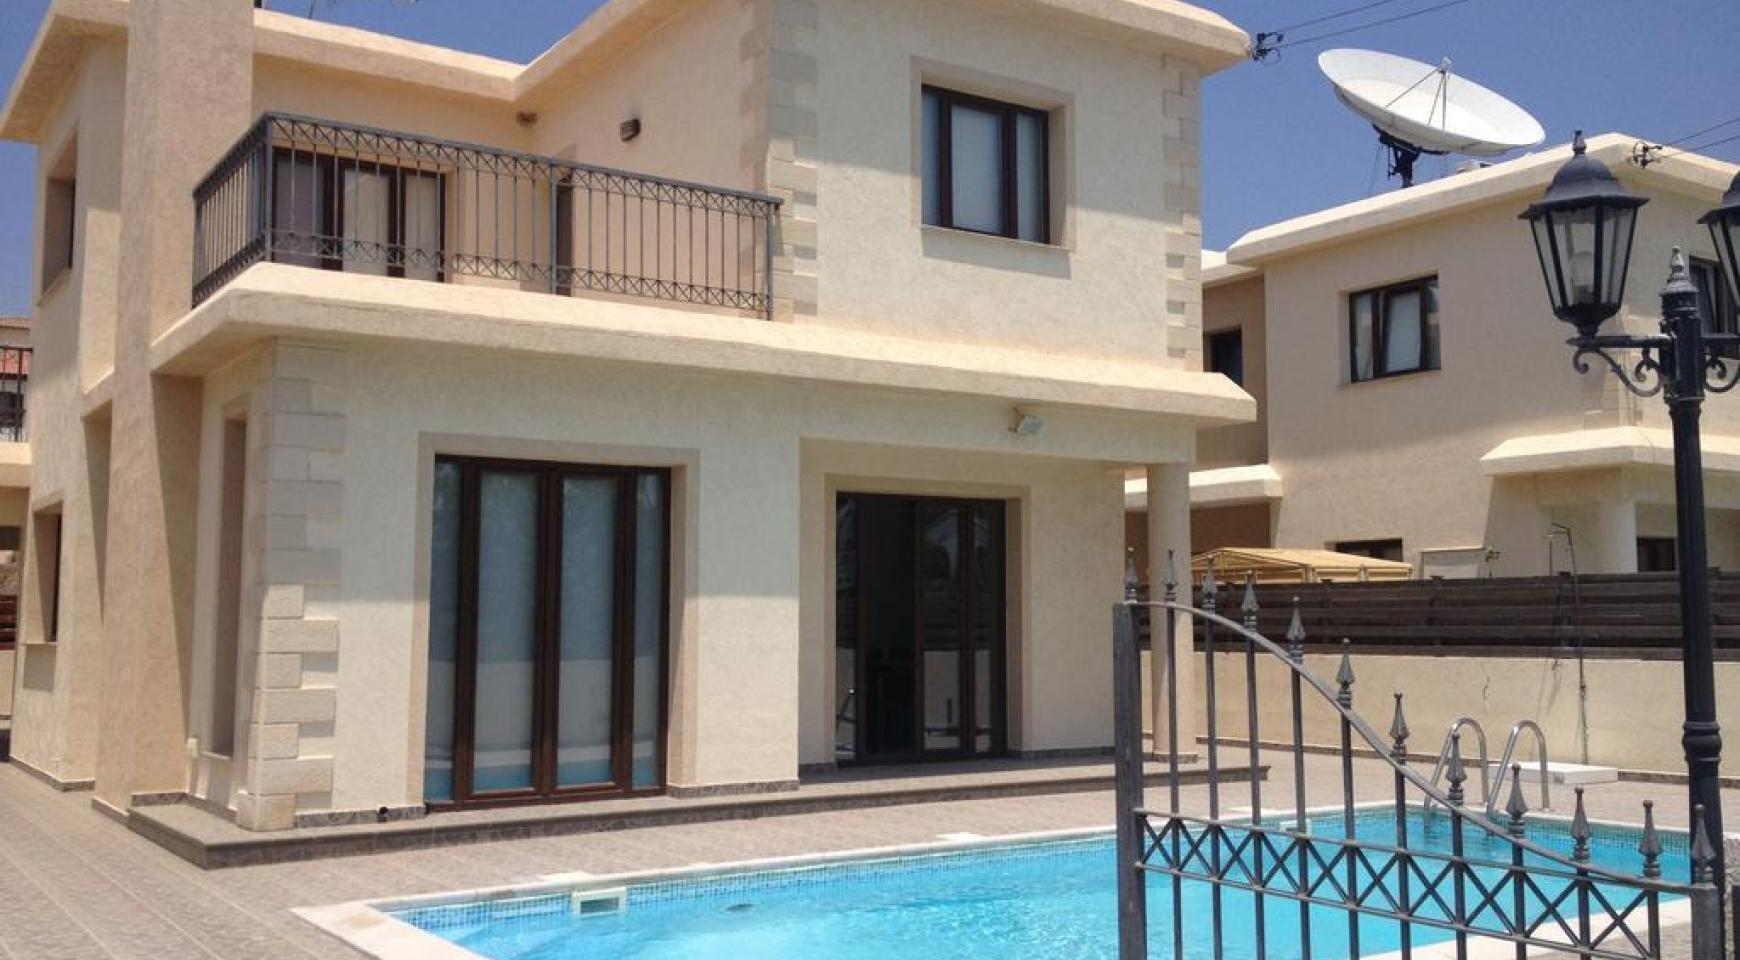 4 Bedroom Villa with Sea and Mountain Views in Pissouri Village - 1